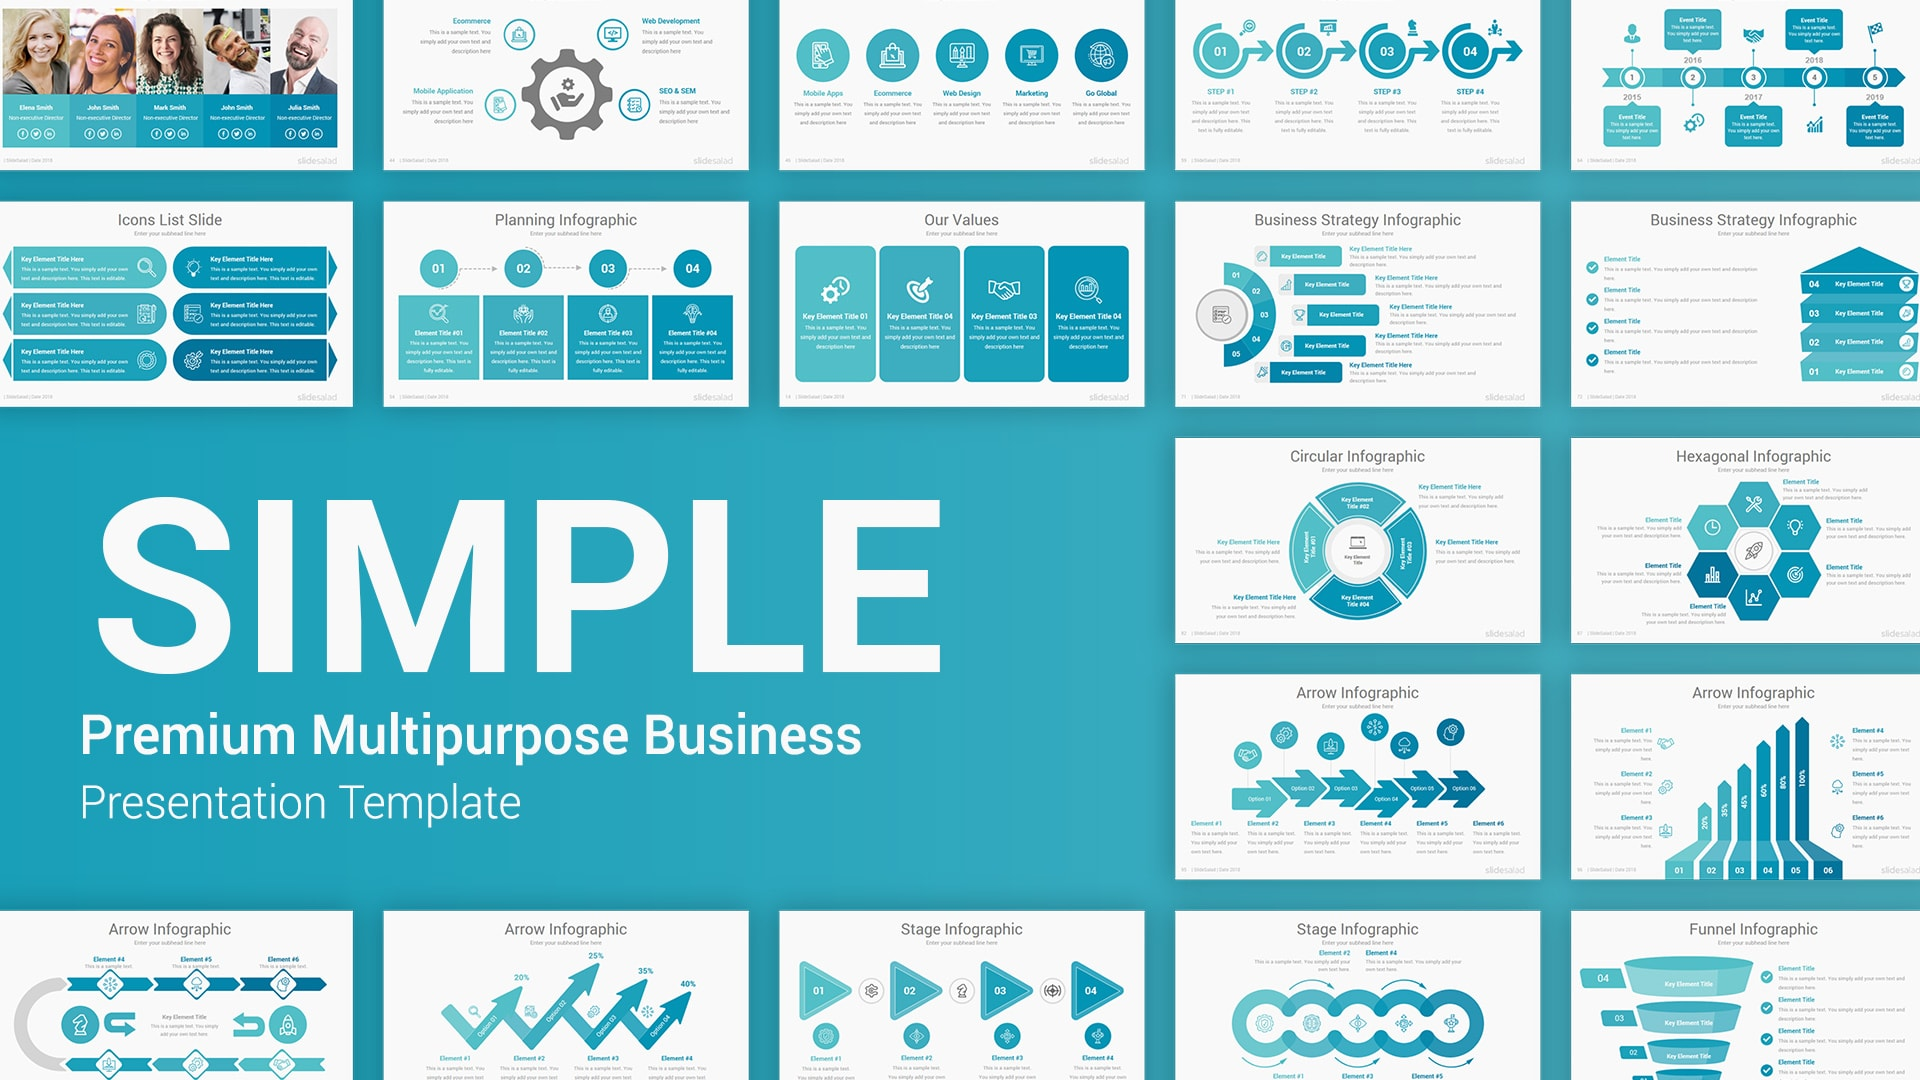 Simple PowerPoint Presentation Templates – Startup Pitch Deck PowerPoint PPT Template